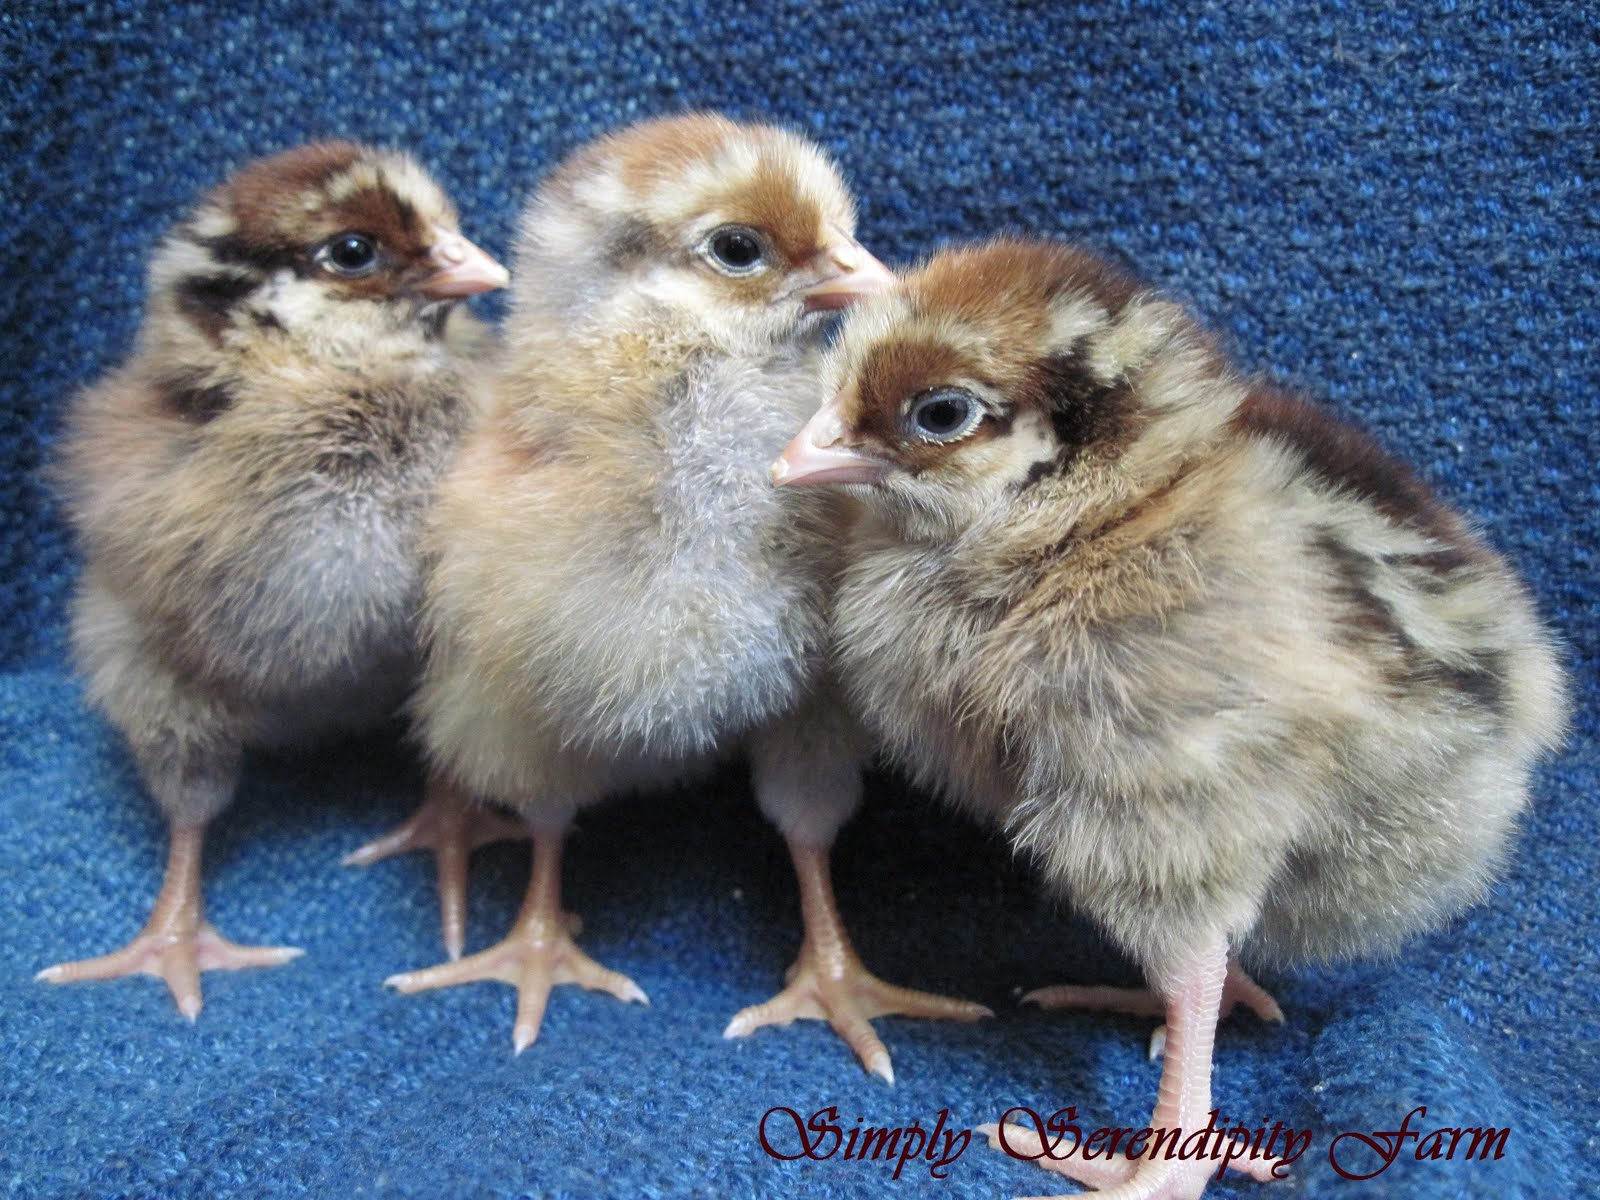 Murray McMurray Hatchery - Blue Laced Red Wyandotte